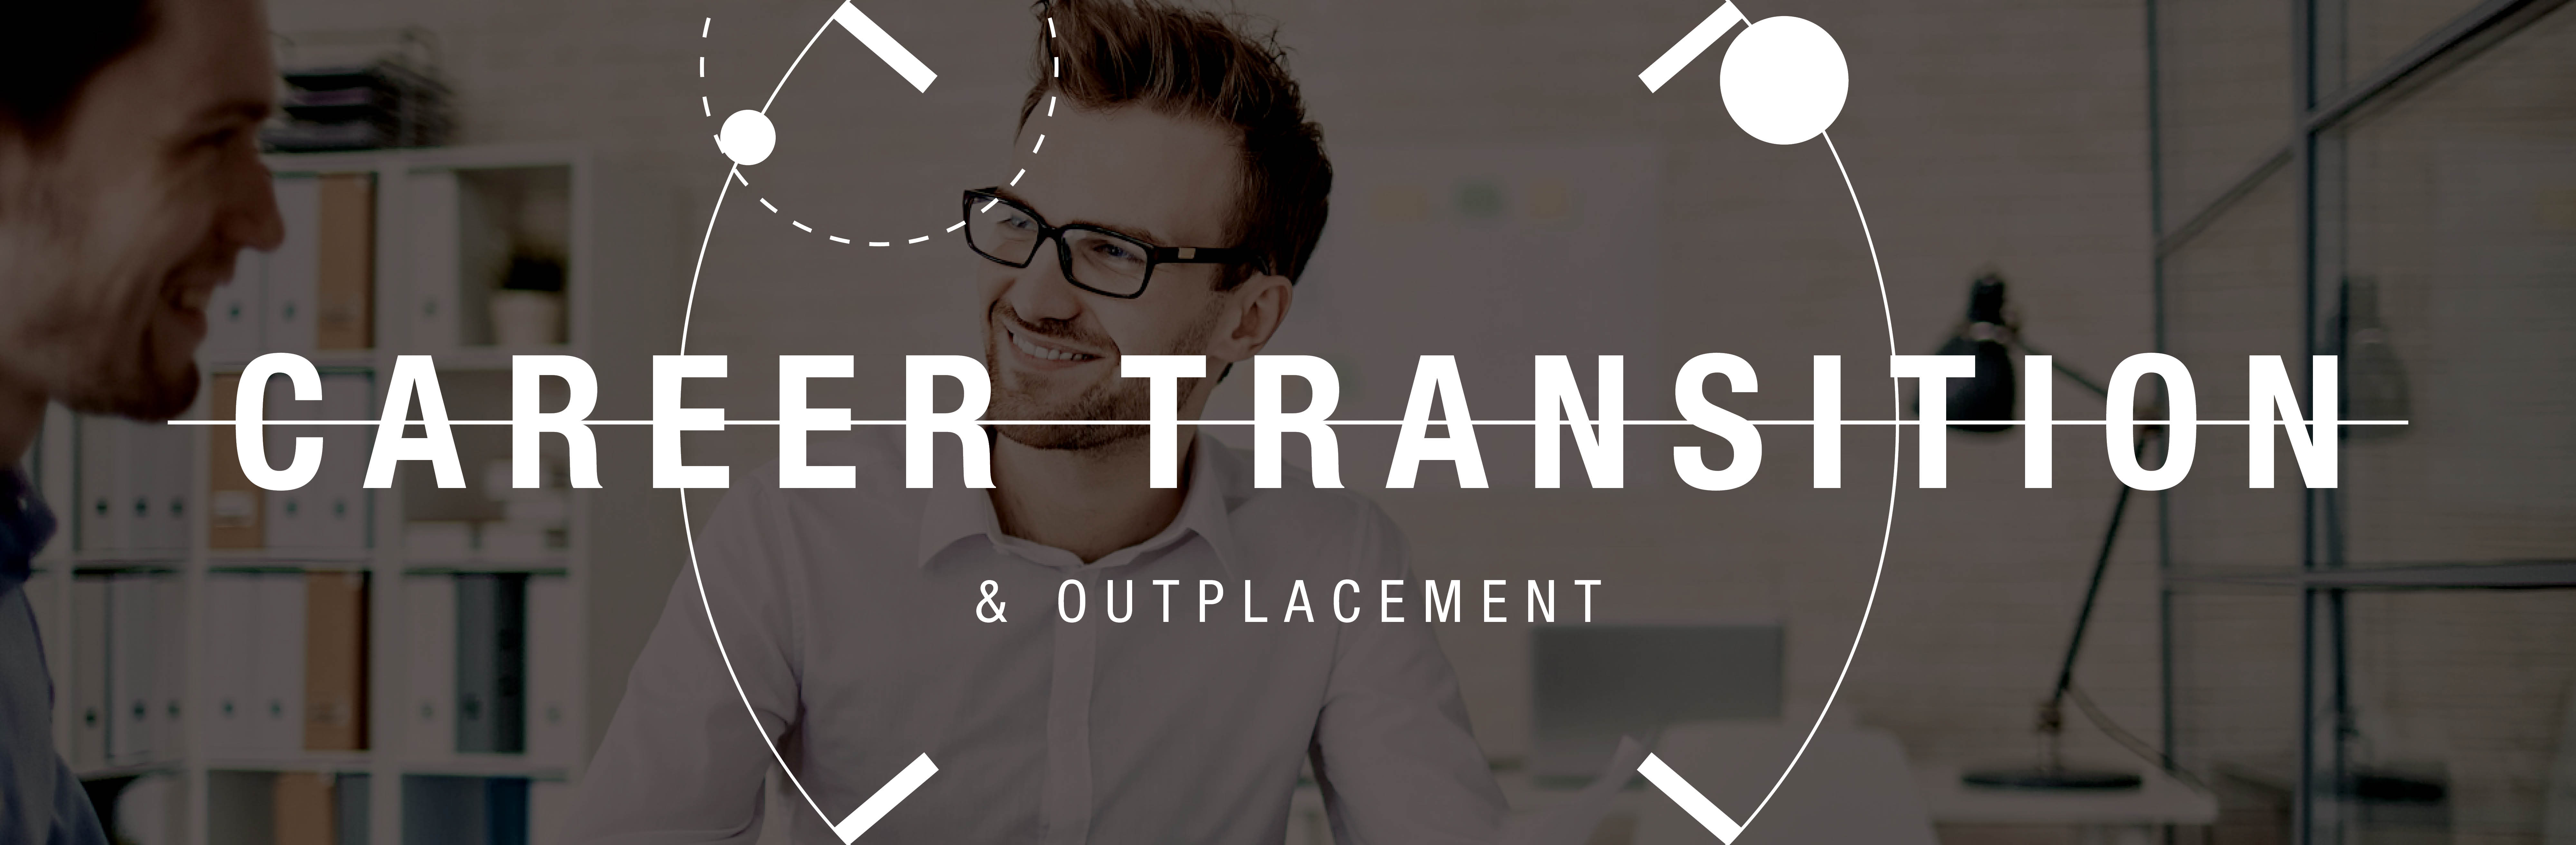 Career Transition & Outplacement